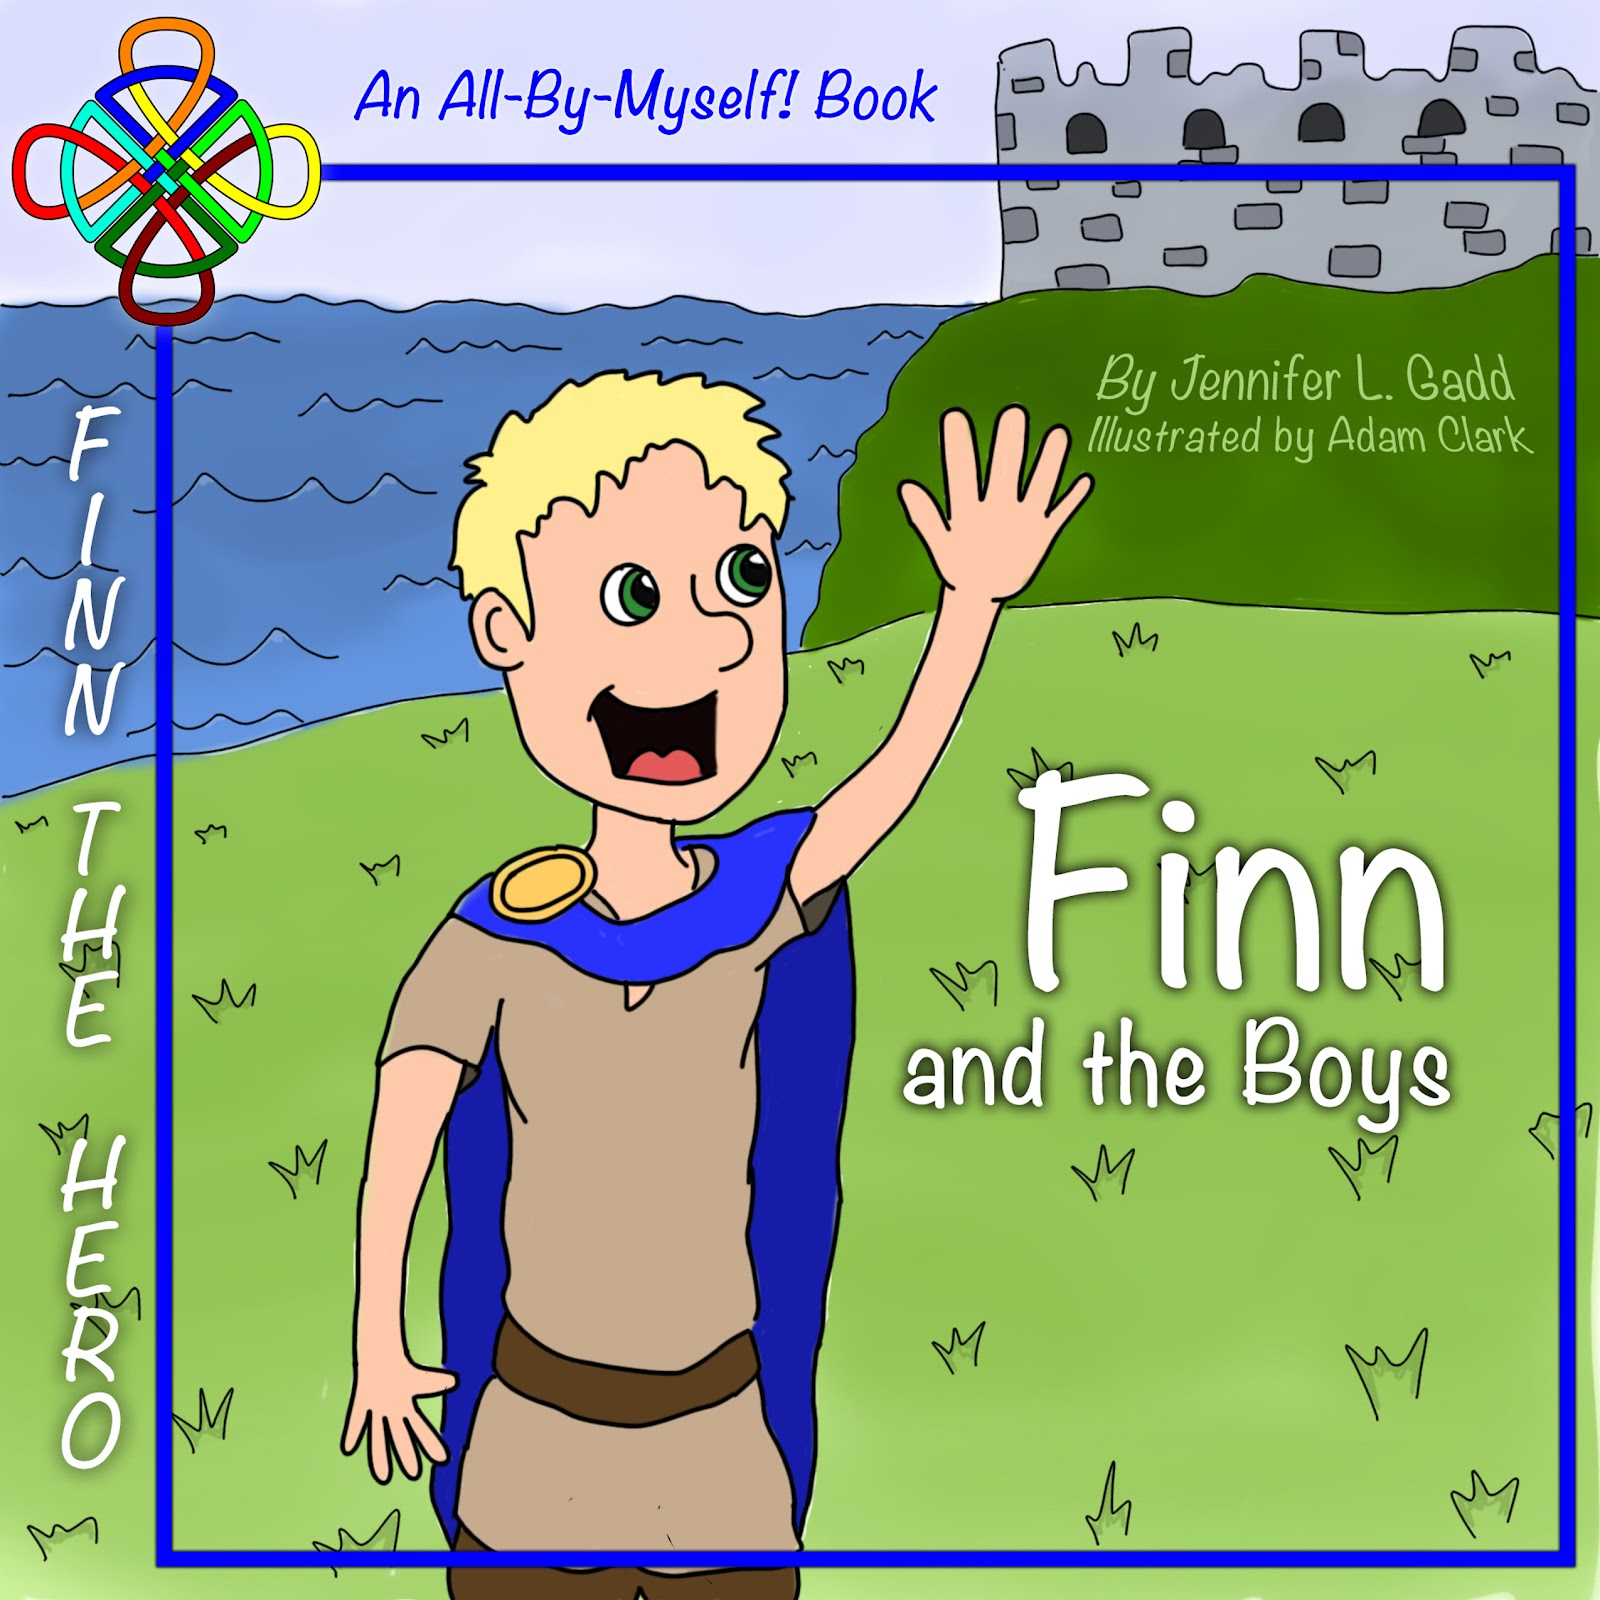 Finn and the Boys Ebook Cover.jpg